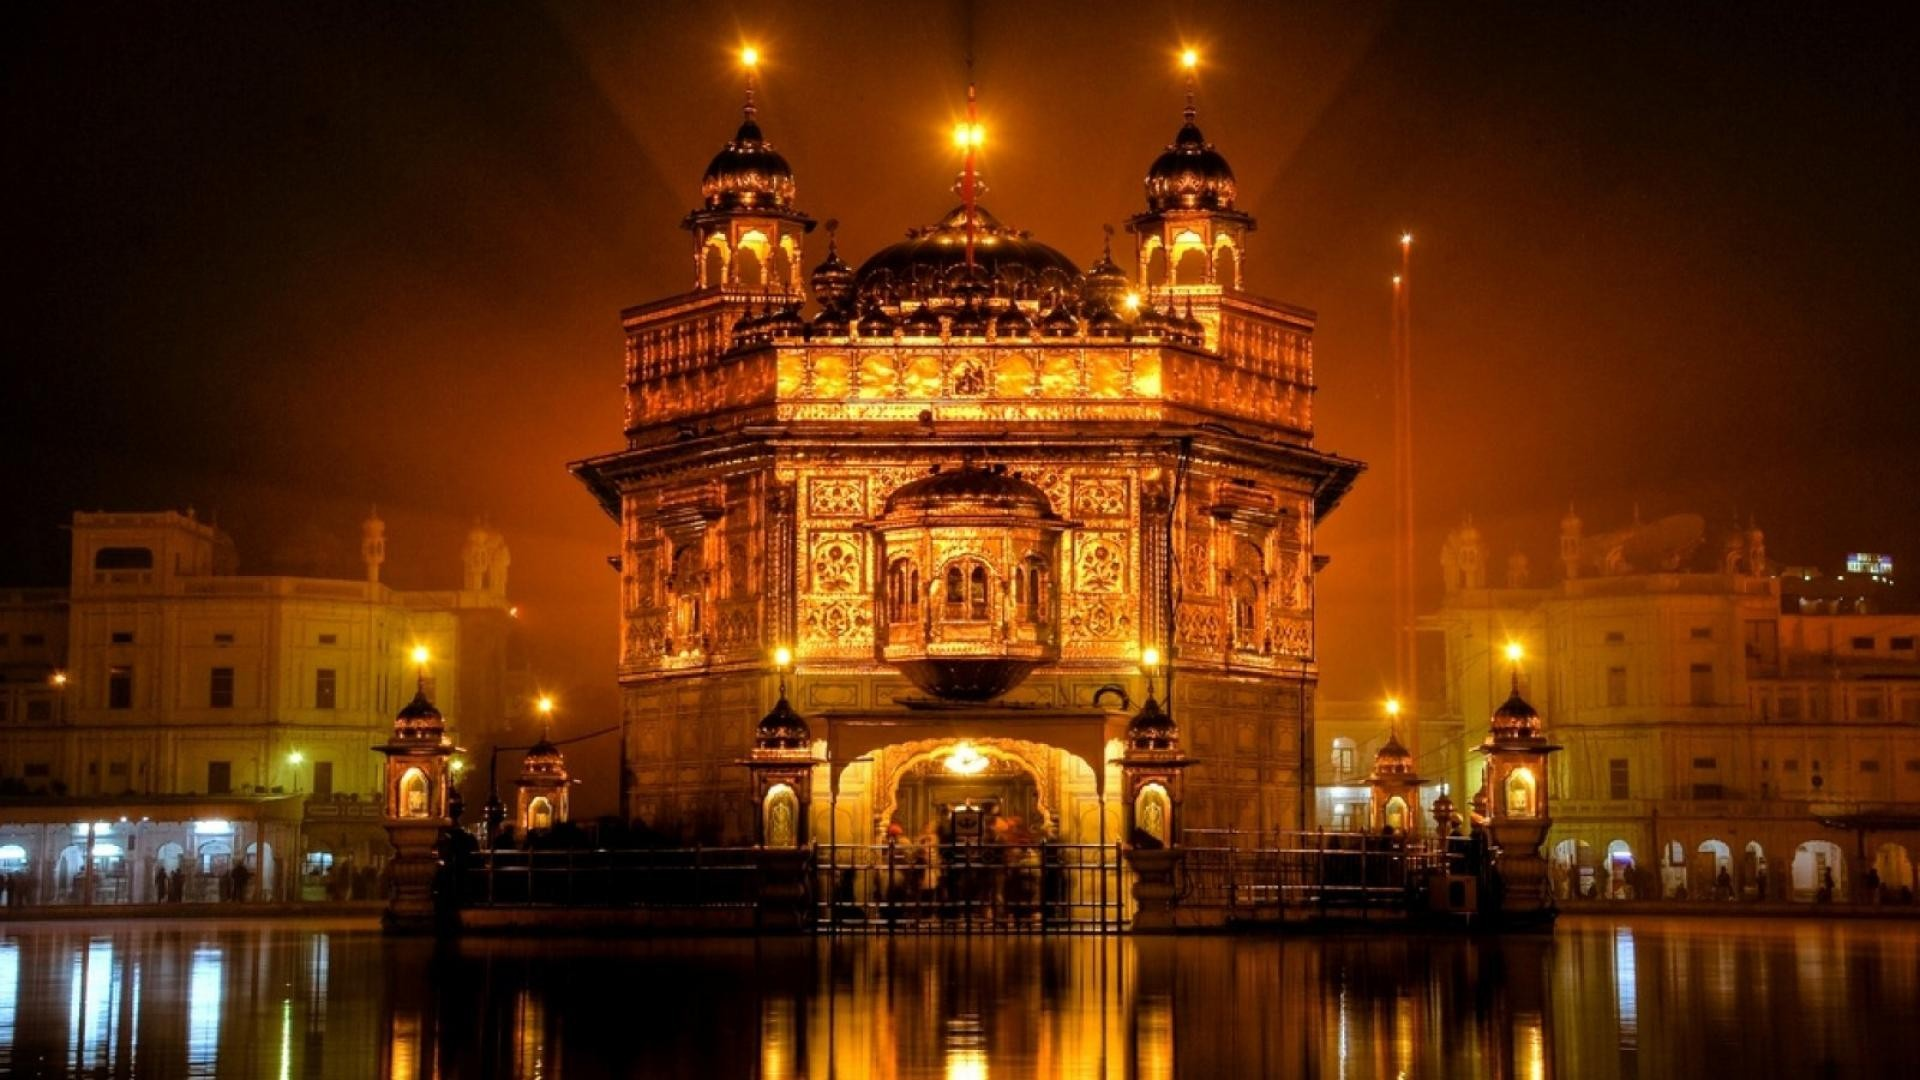 the golden temple at night in amritsar india wallpaper